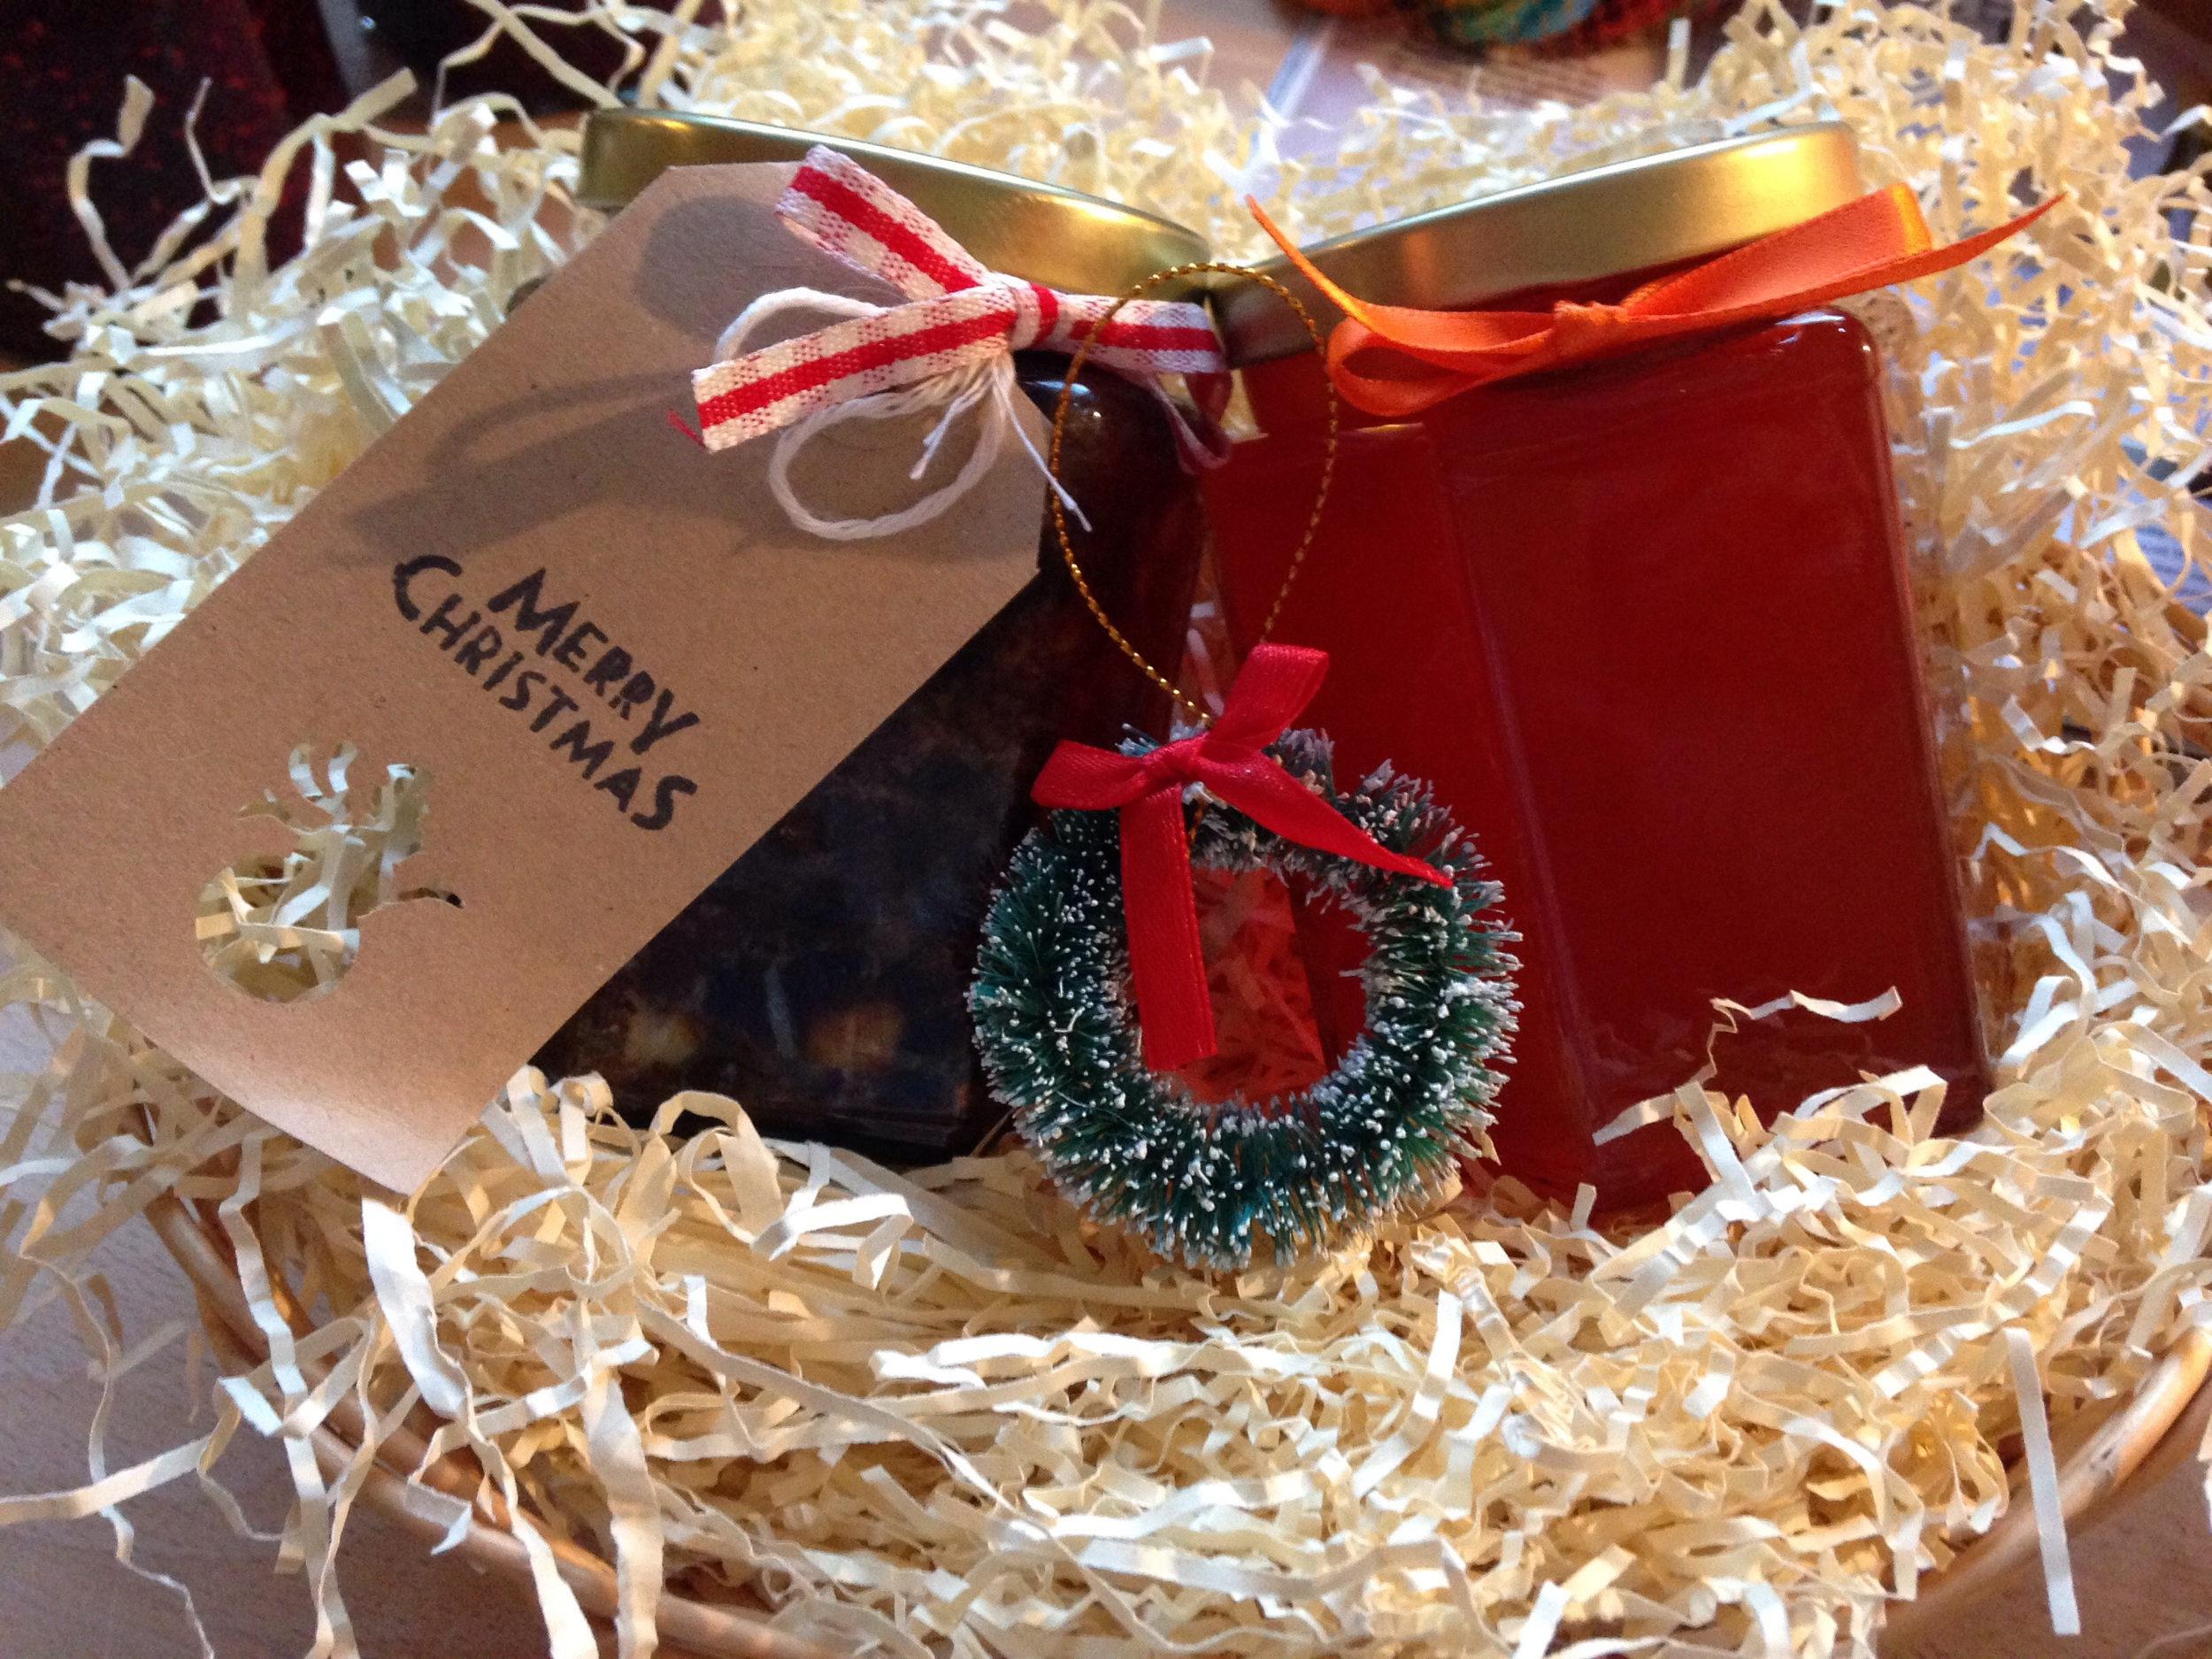 A couple of jars with some packing & a Christmas decoration makes a lovely hamper.